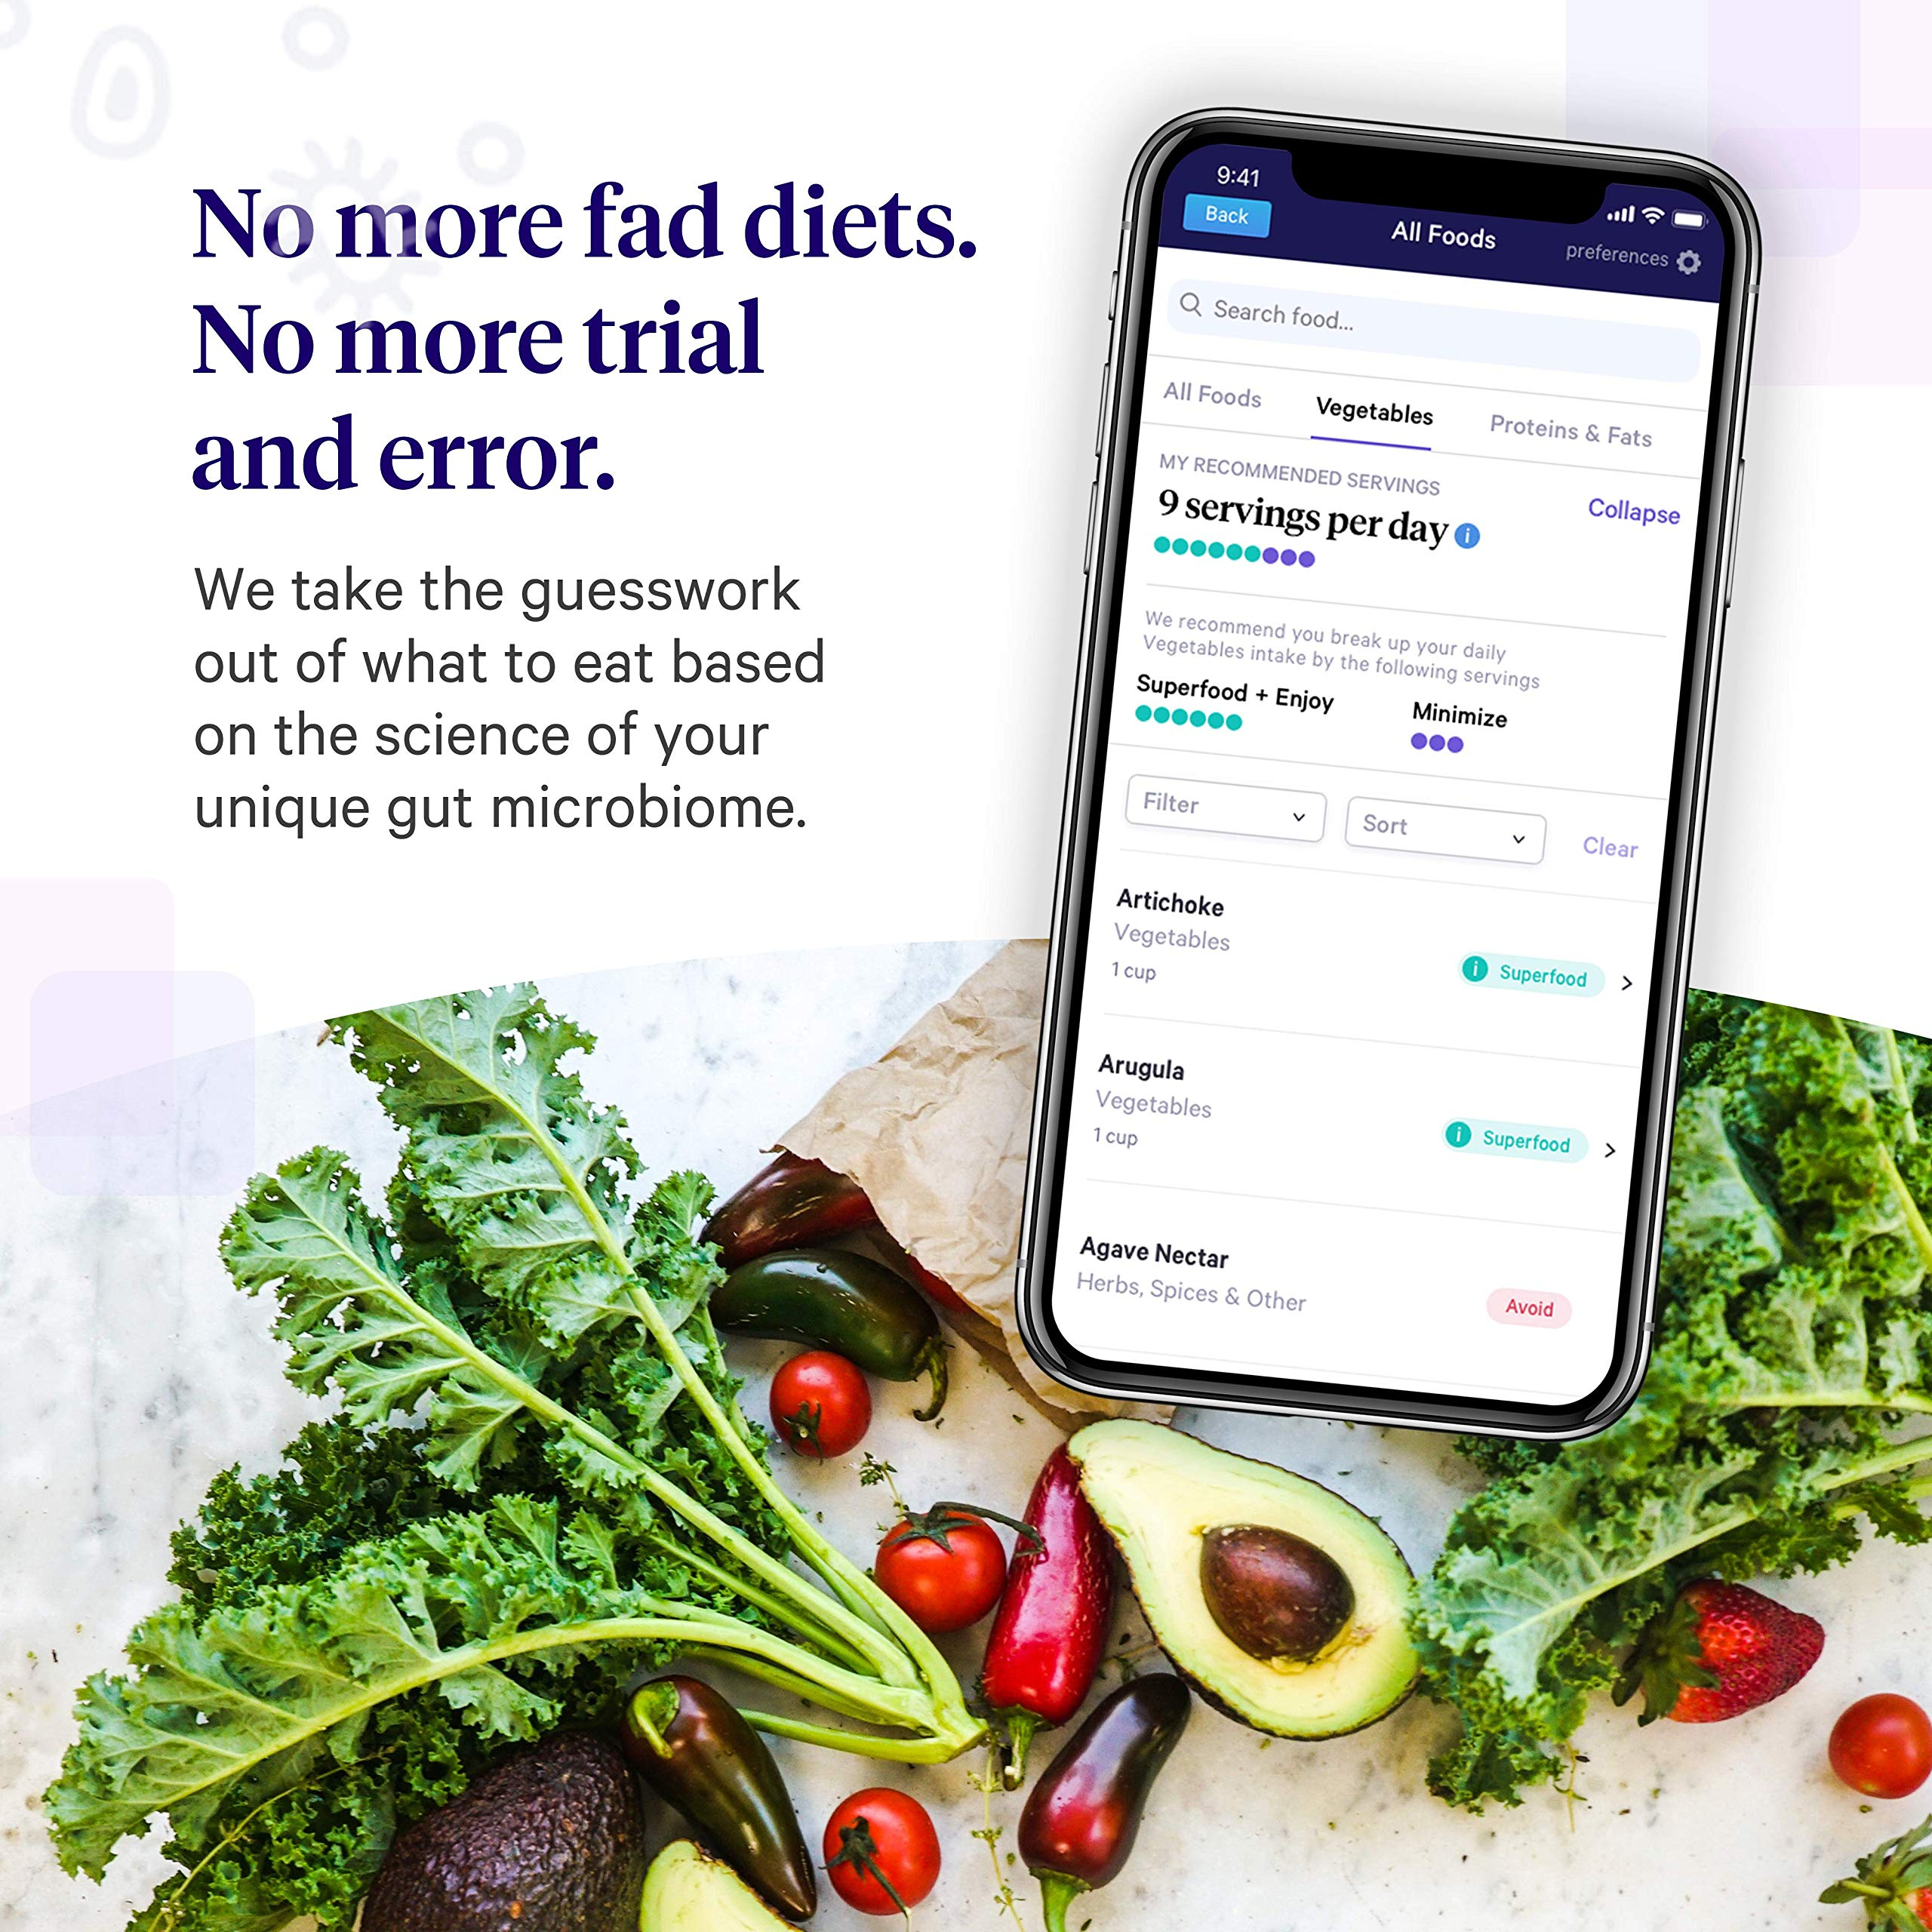 Viome at-Home Gut Microbiome Test   Science Based Personalized Recommendations for Food, Prebiotics & Probiotics   Weight Loss   Improve Digestion   Enhance Sleep   Clear Skin   Boost Mental Focus by Viome (Image #6)